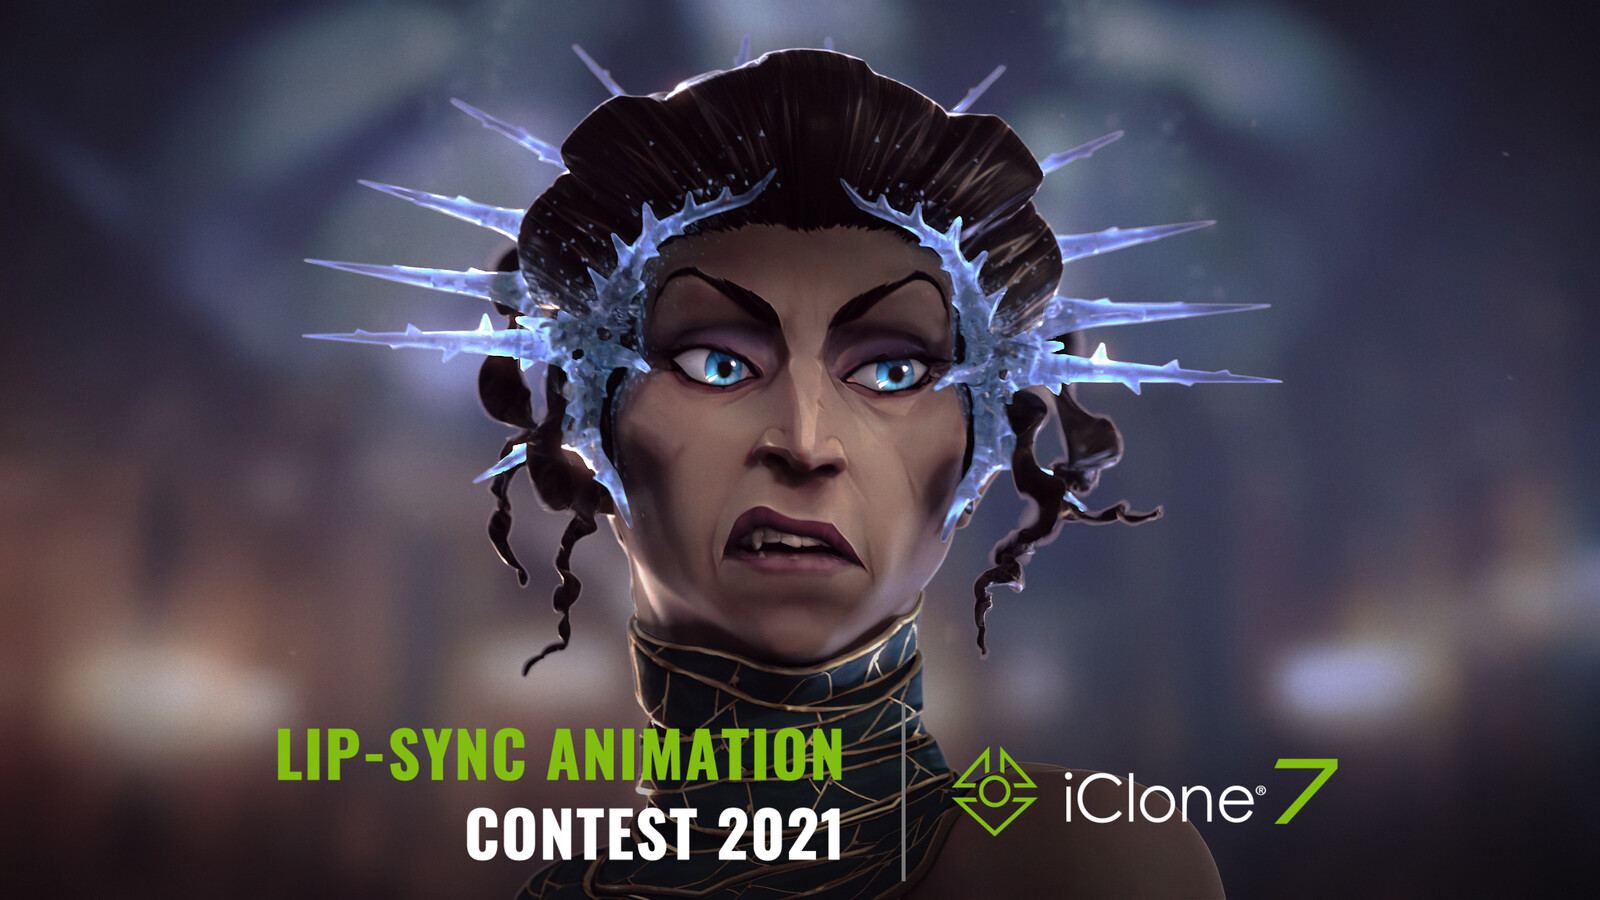 2021 iClone Lip-Sync Animation Contest - Ice Queen